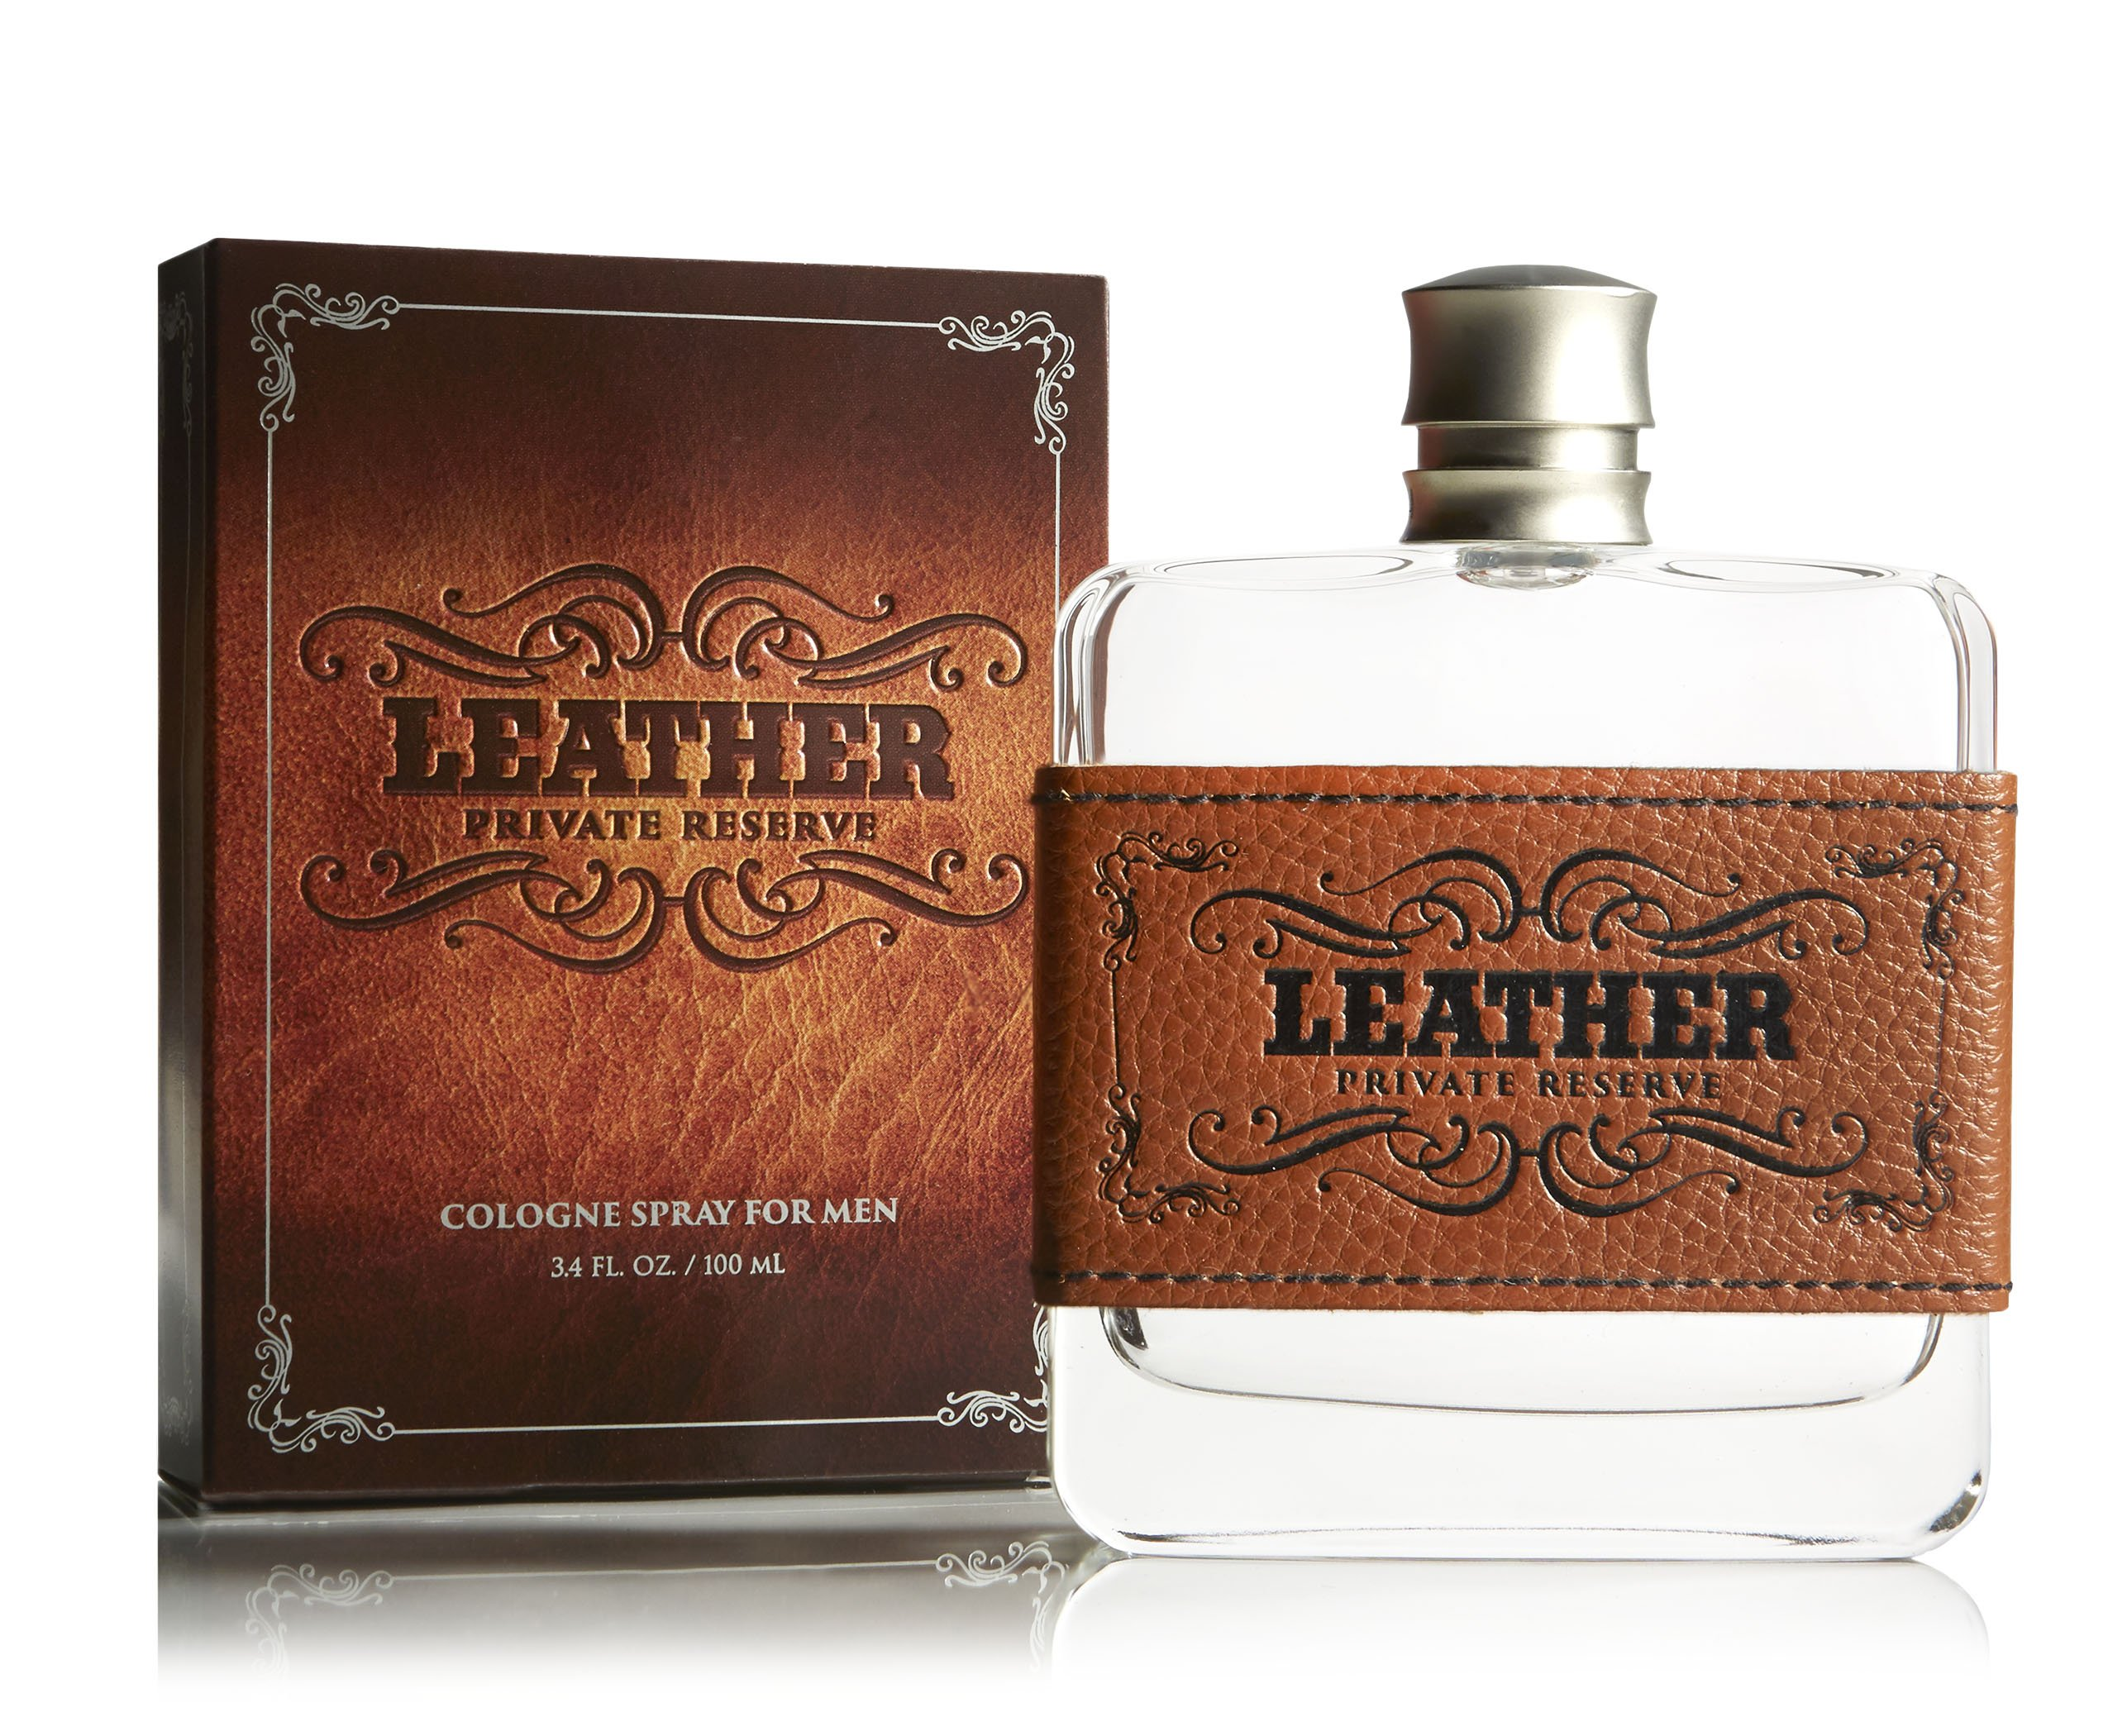 Leather Cologne - Natural and Authentic Fragrance Spray Perfume for Men - Masculine, Woody and Earthy With Notes of Cedarwood, Sun-worn Leather - 3.4 oz 100 ml